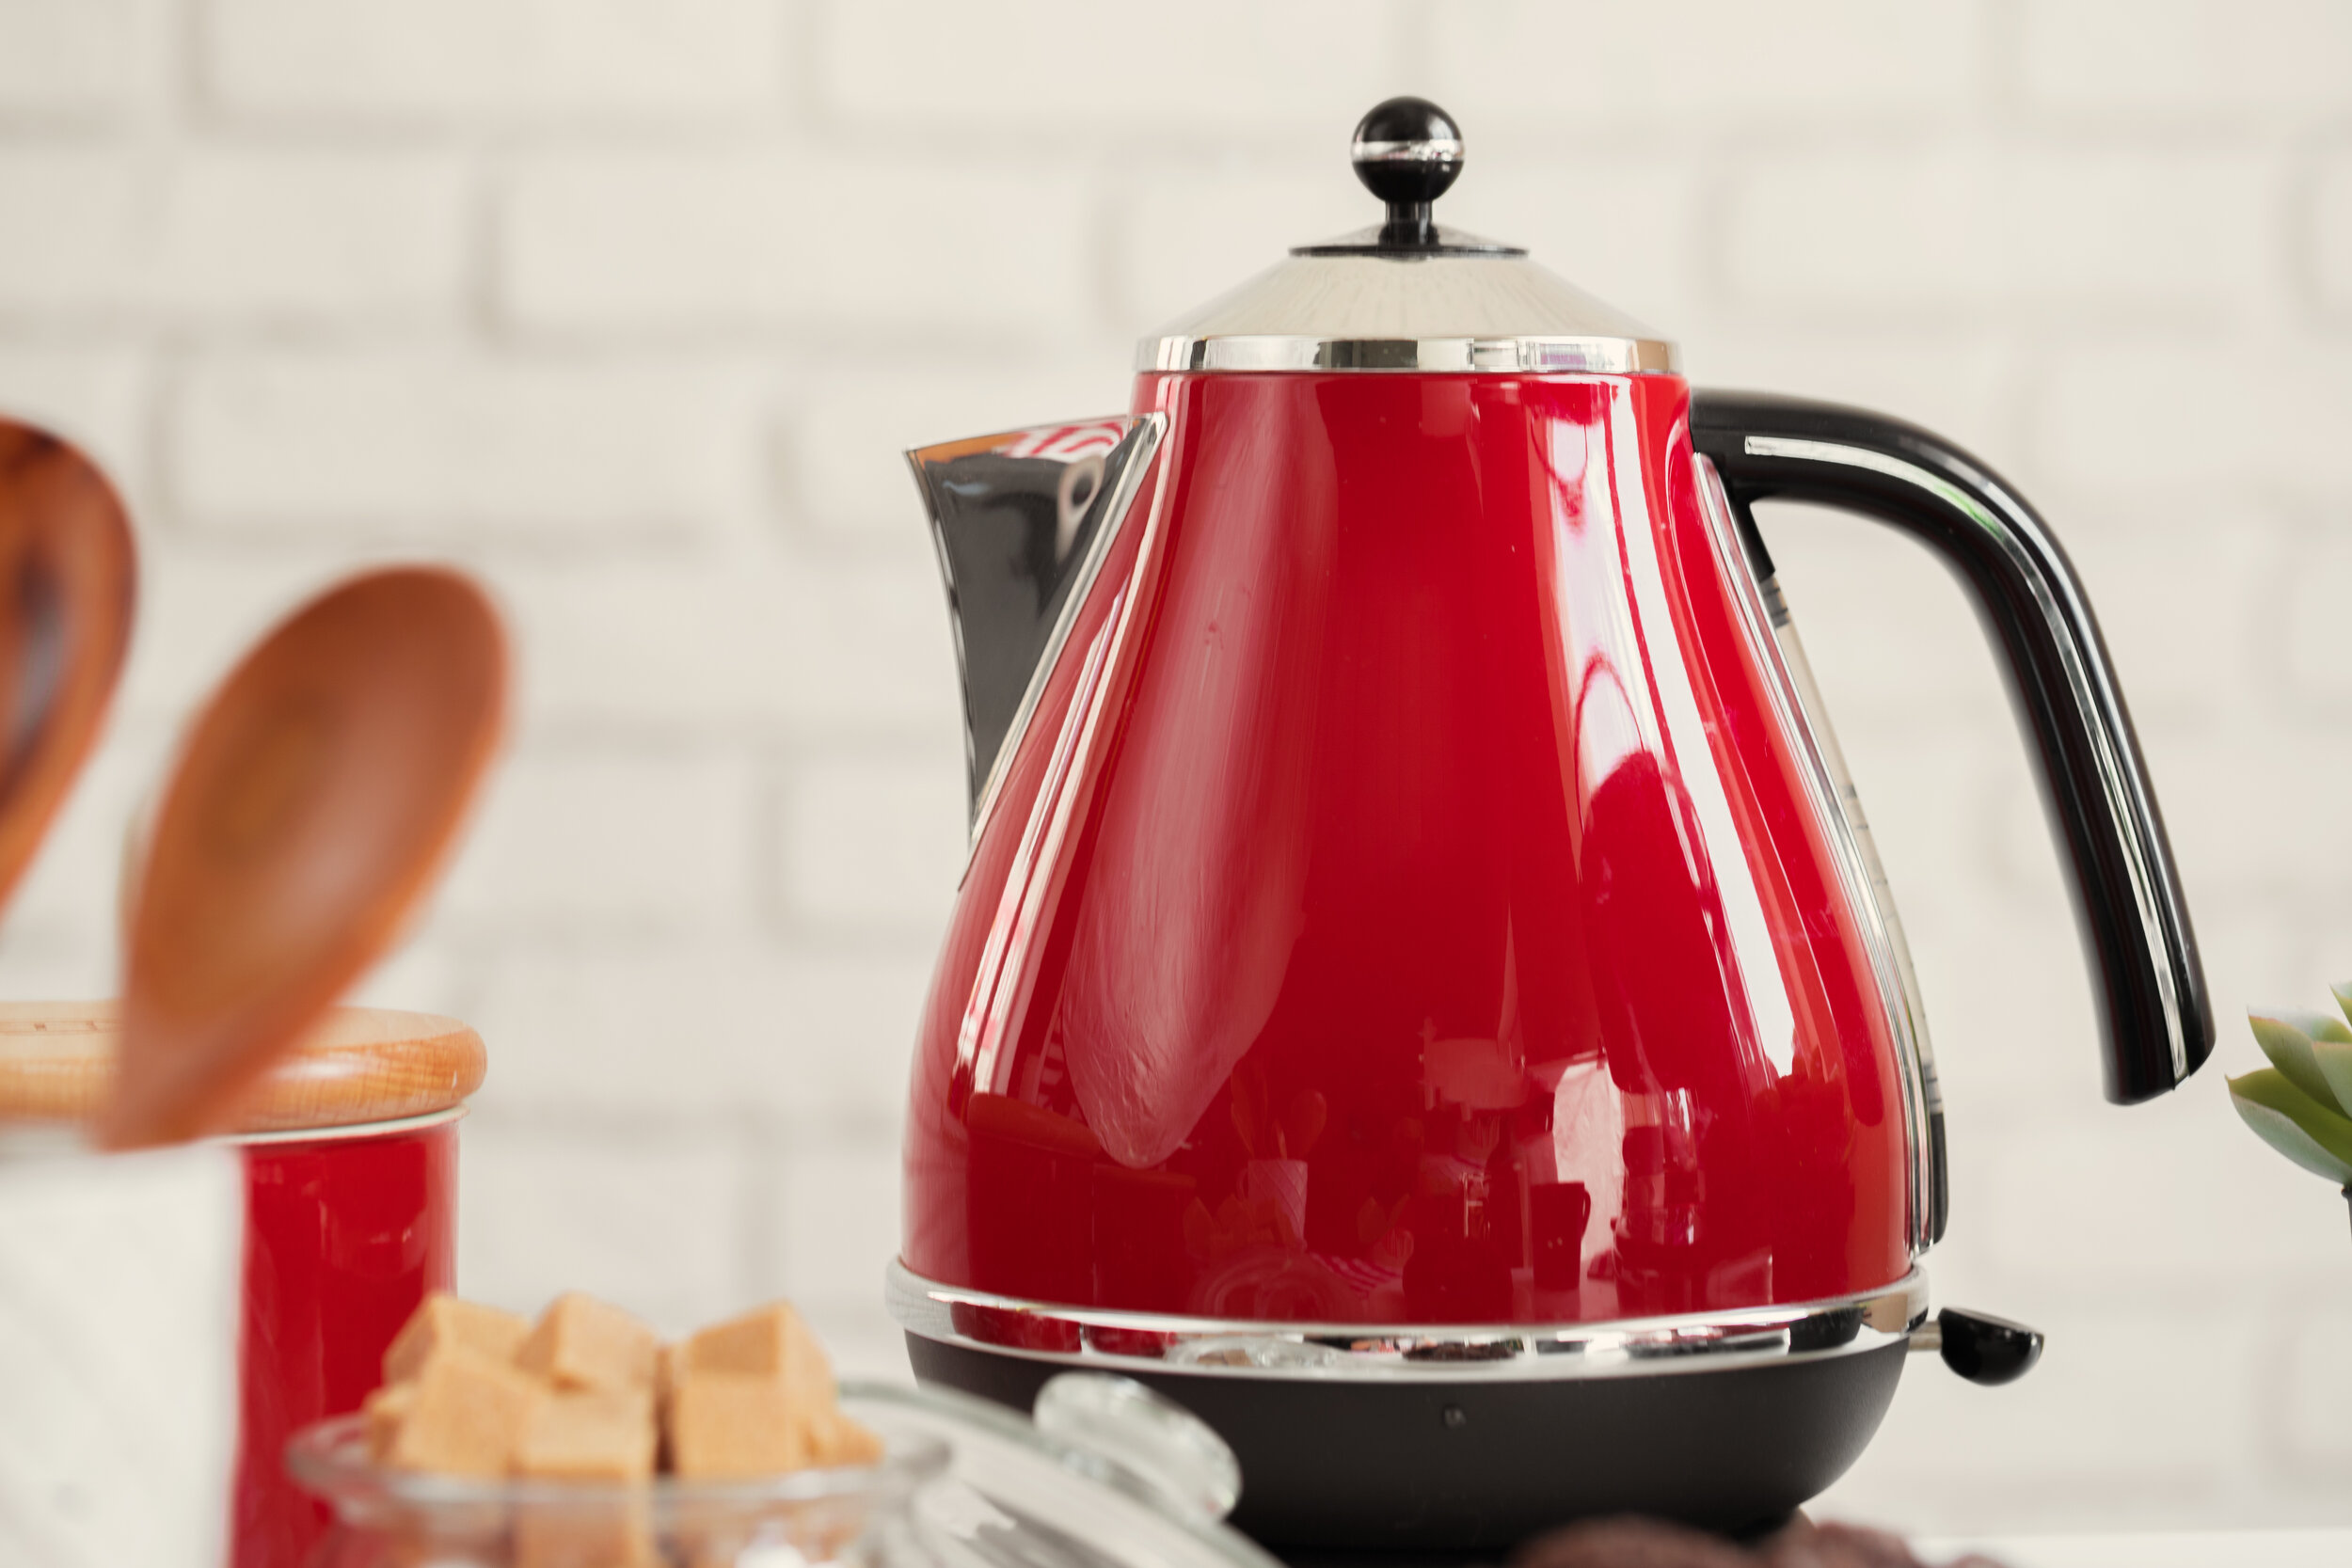 AdobeStock_288101517 - Coffeemaker in Red.jpeg